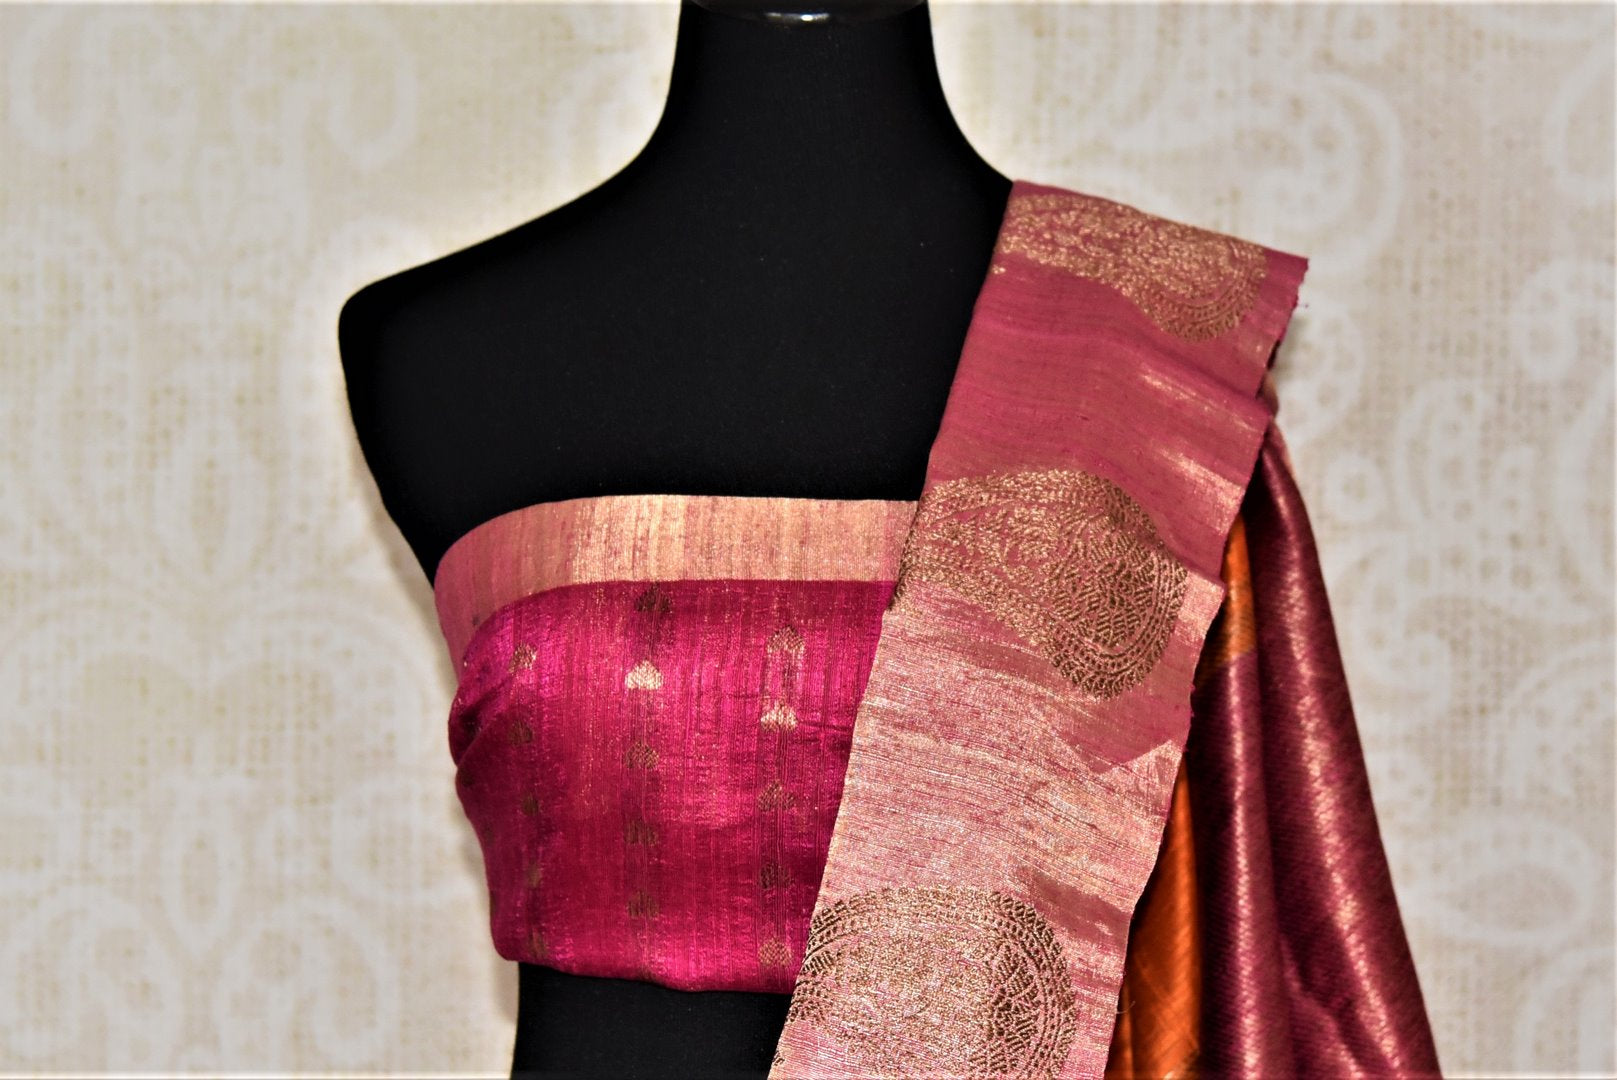 Shop stunning orange tussar Banarsi saree online in USA with zari work on pink border. Choose tasteful handloom sarees for special occasions from Pure Elegance. Our exclusive Indian fashion store has a myriad of exquisite pure silk saris, tussar sarees, Banarasi sarees for Indian women in USA.-blouse pallu